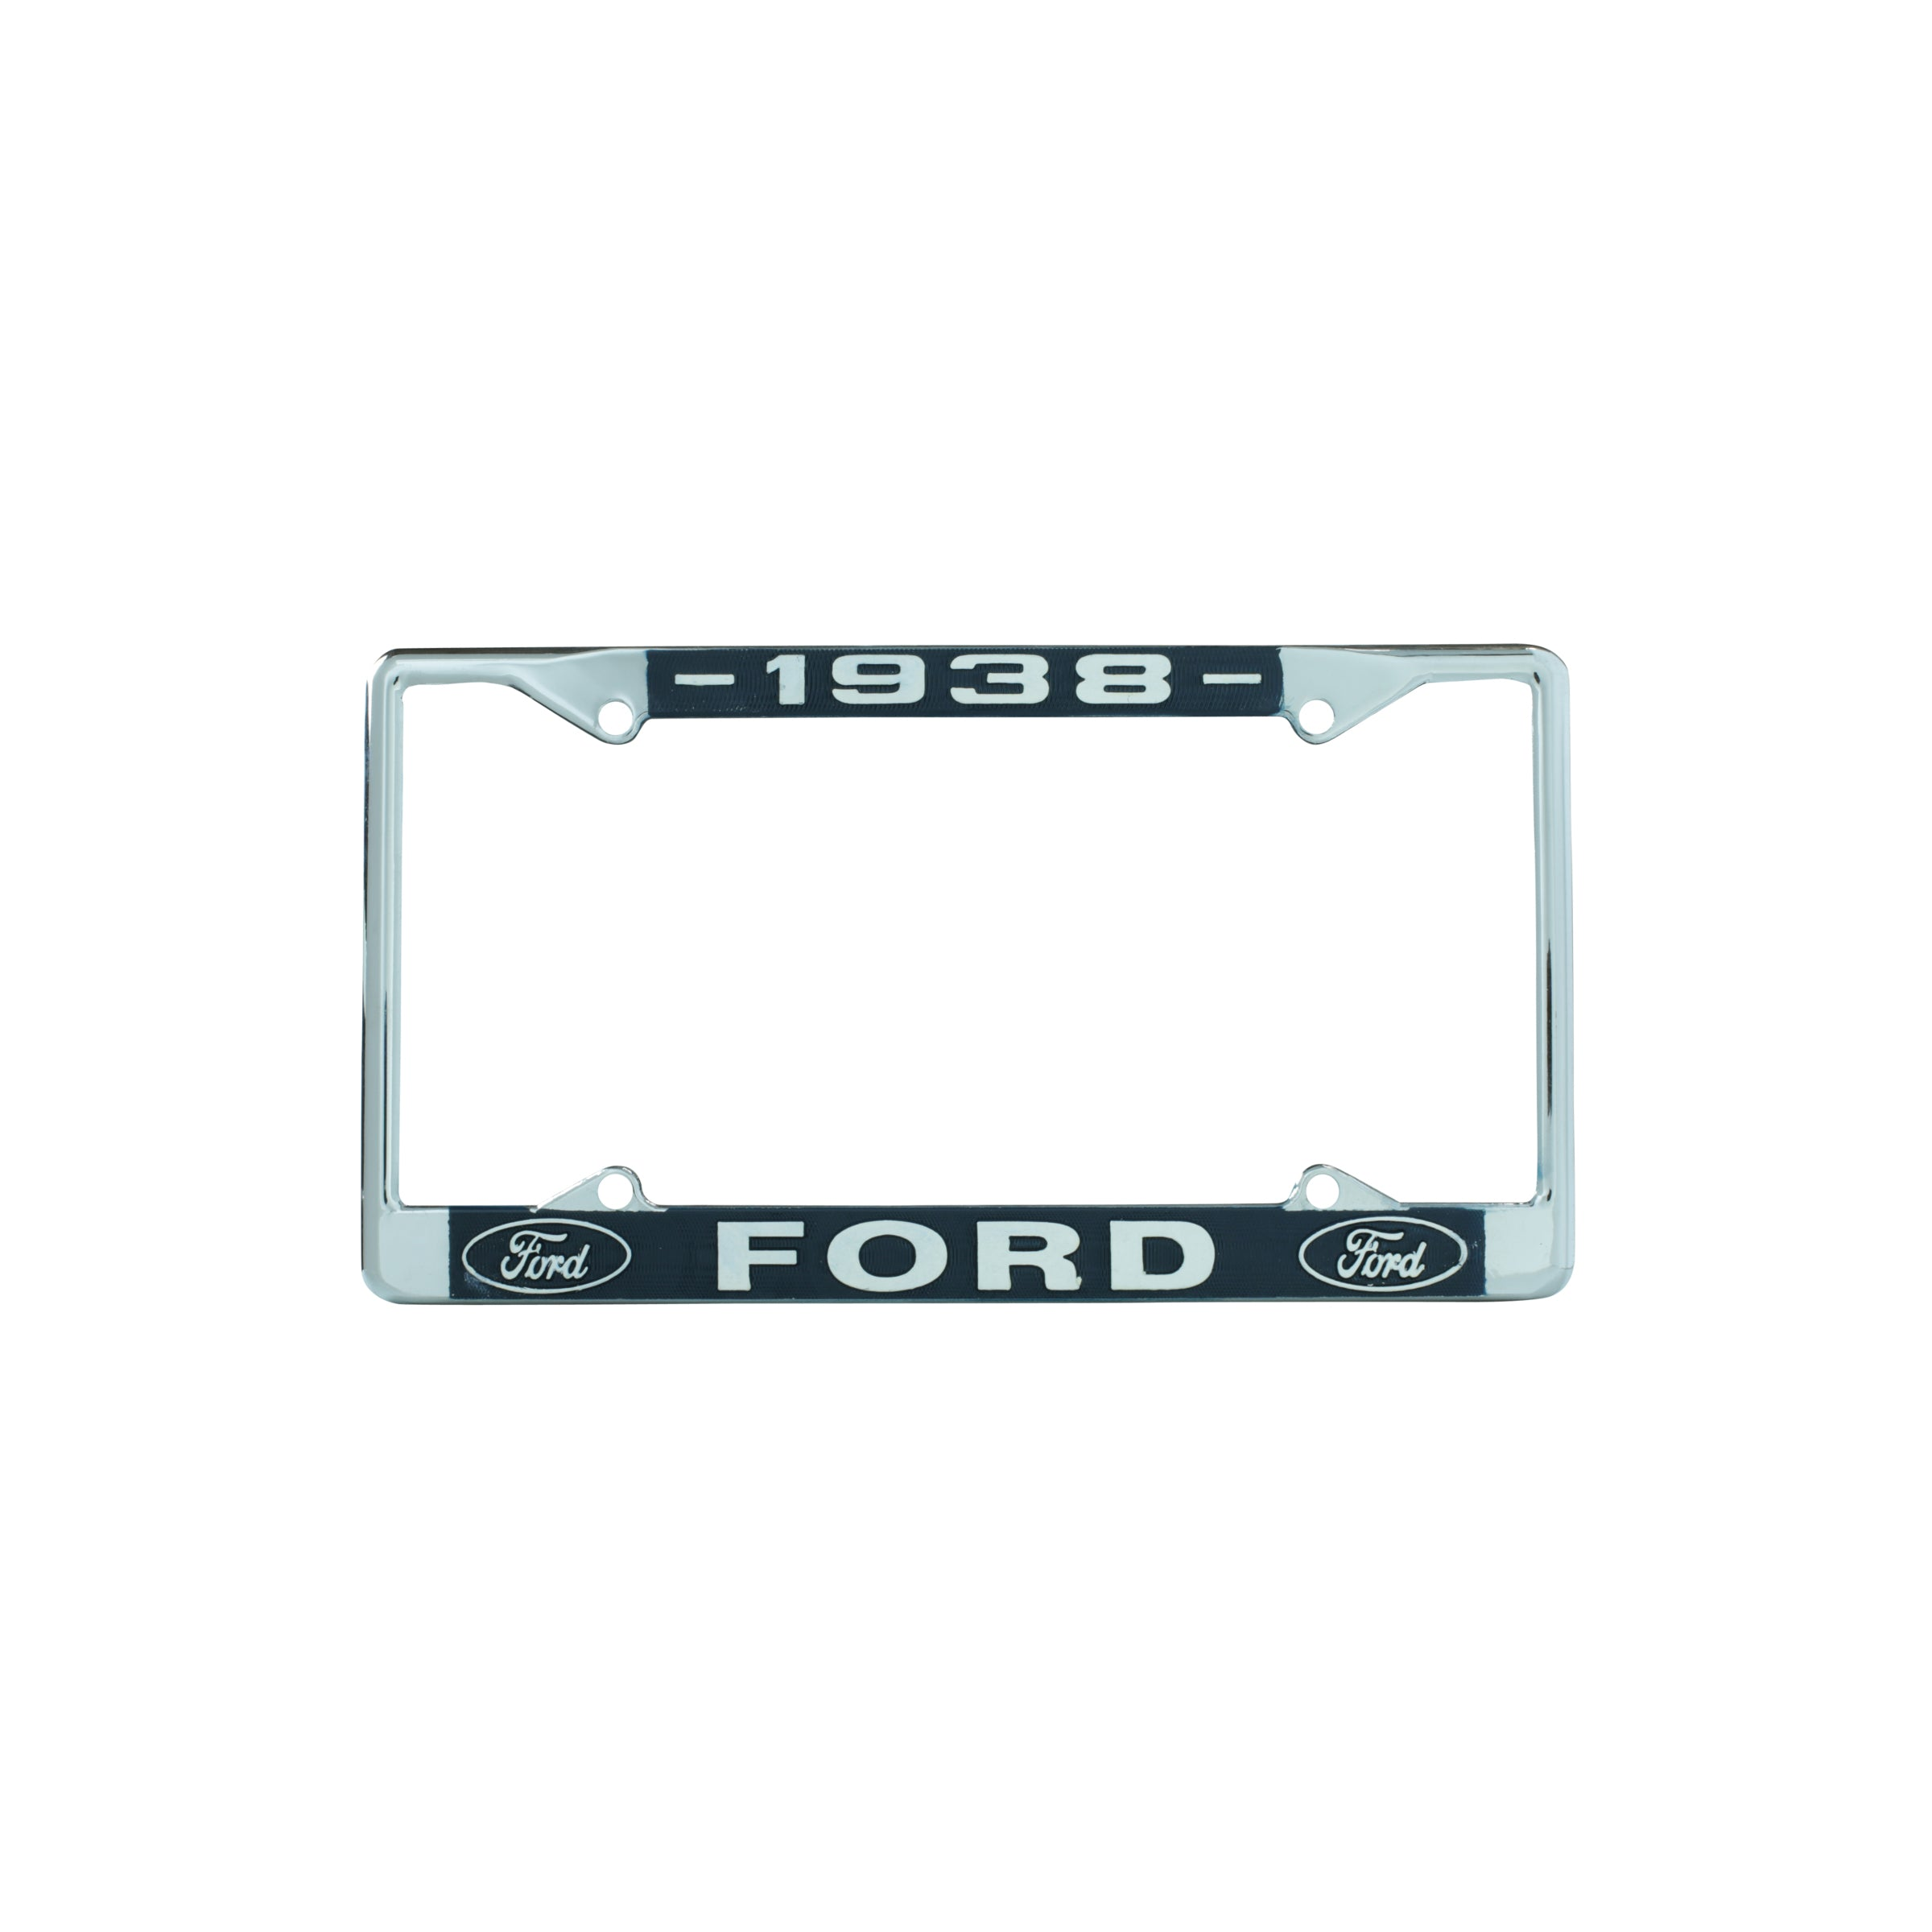 License Plate Frame • 1938 Ford